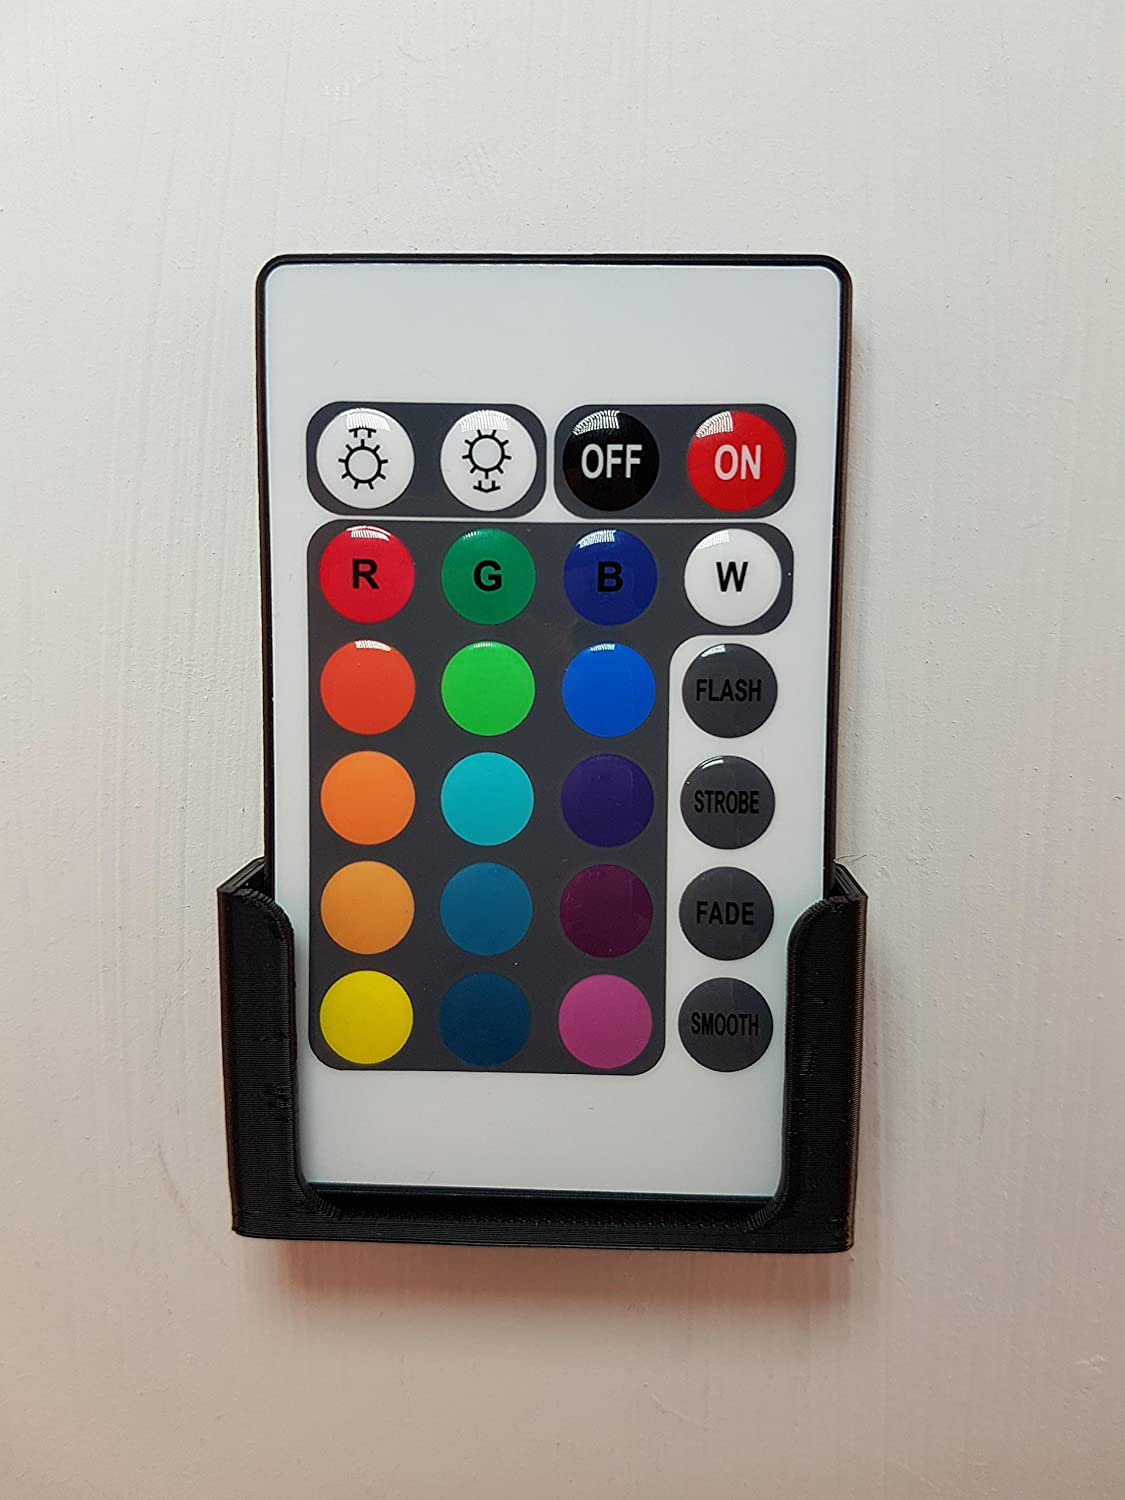 Wall Mount for LED Lighting Remote Control : Black 3D Cabin